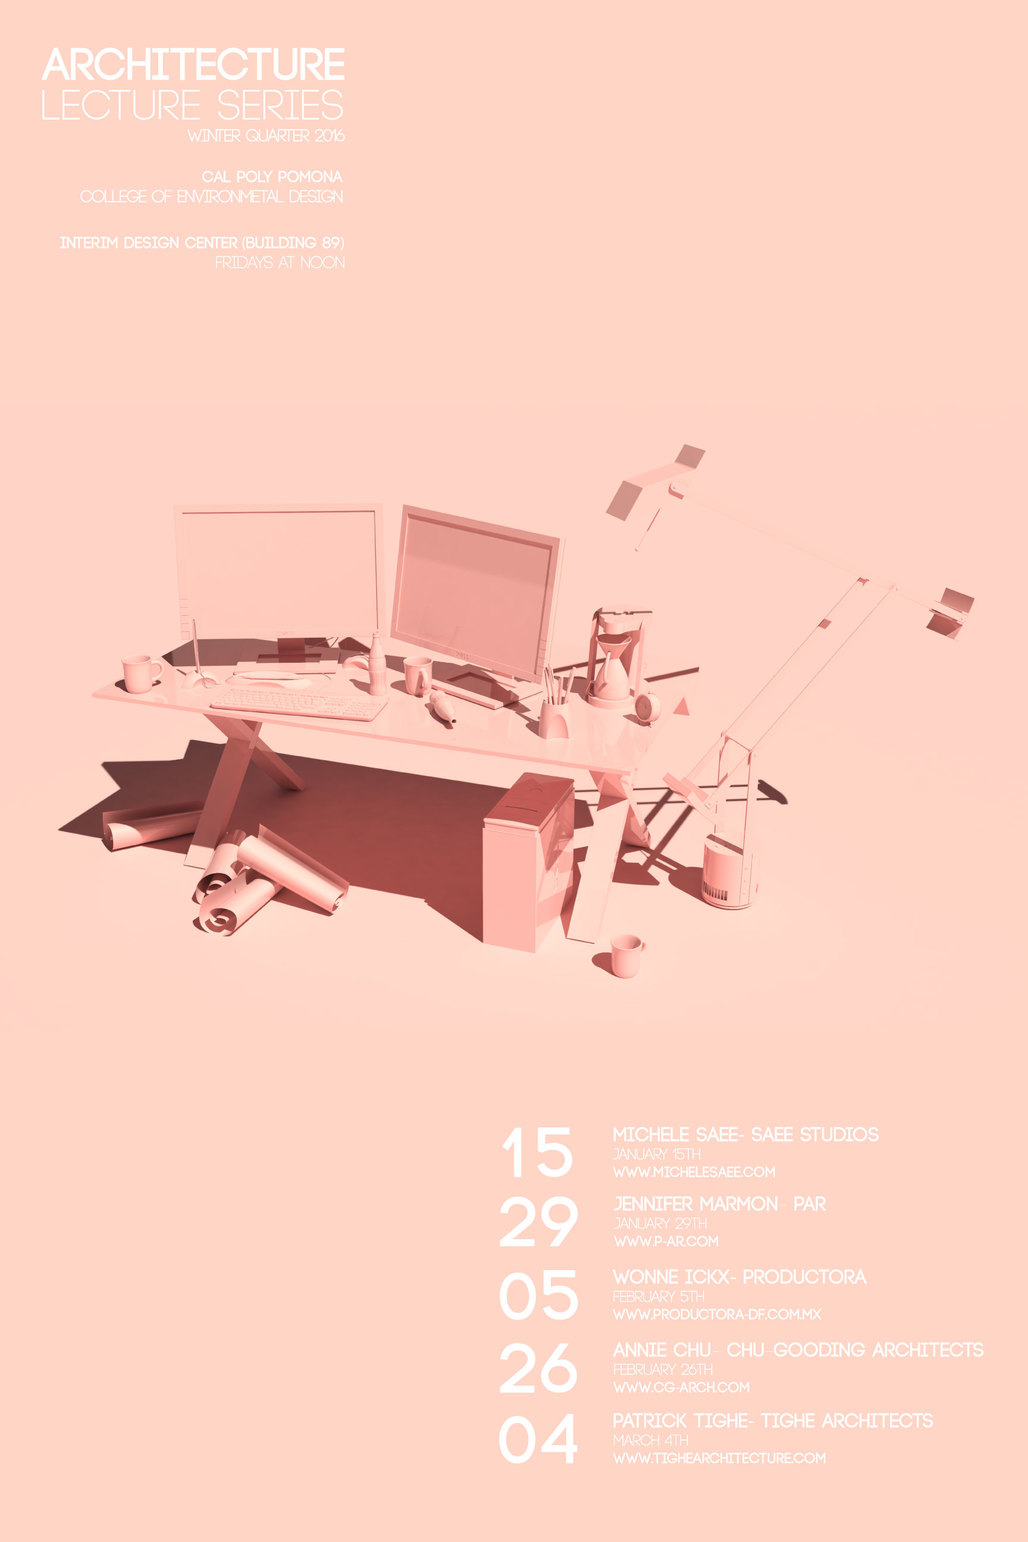 Poster Design by CPP Architecture 5th year student Adrian Newcomb.